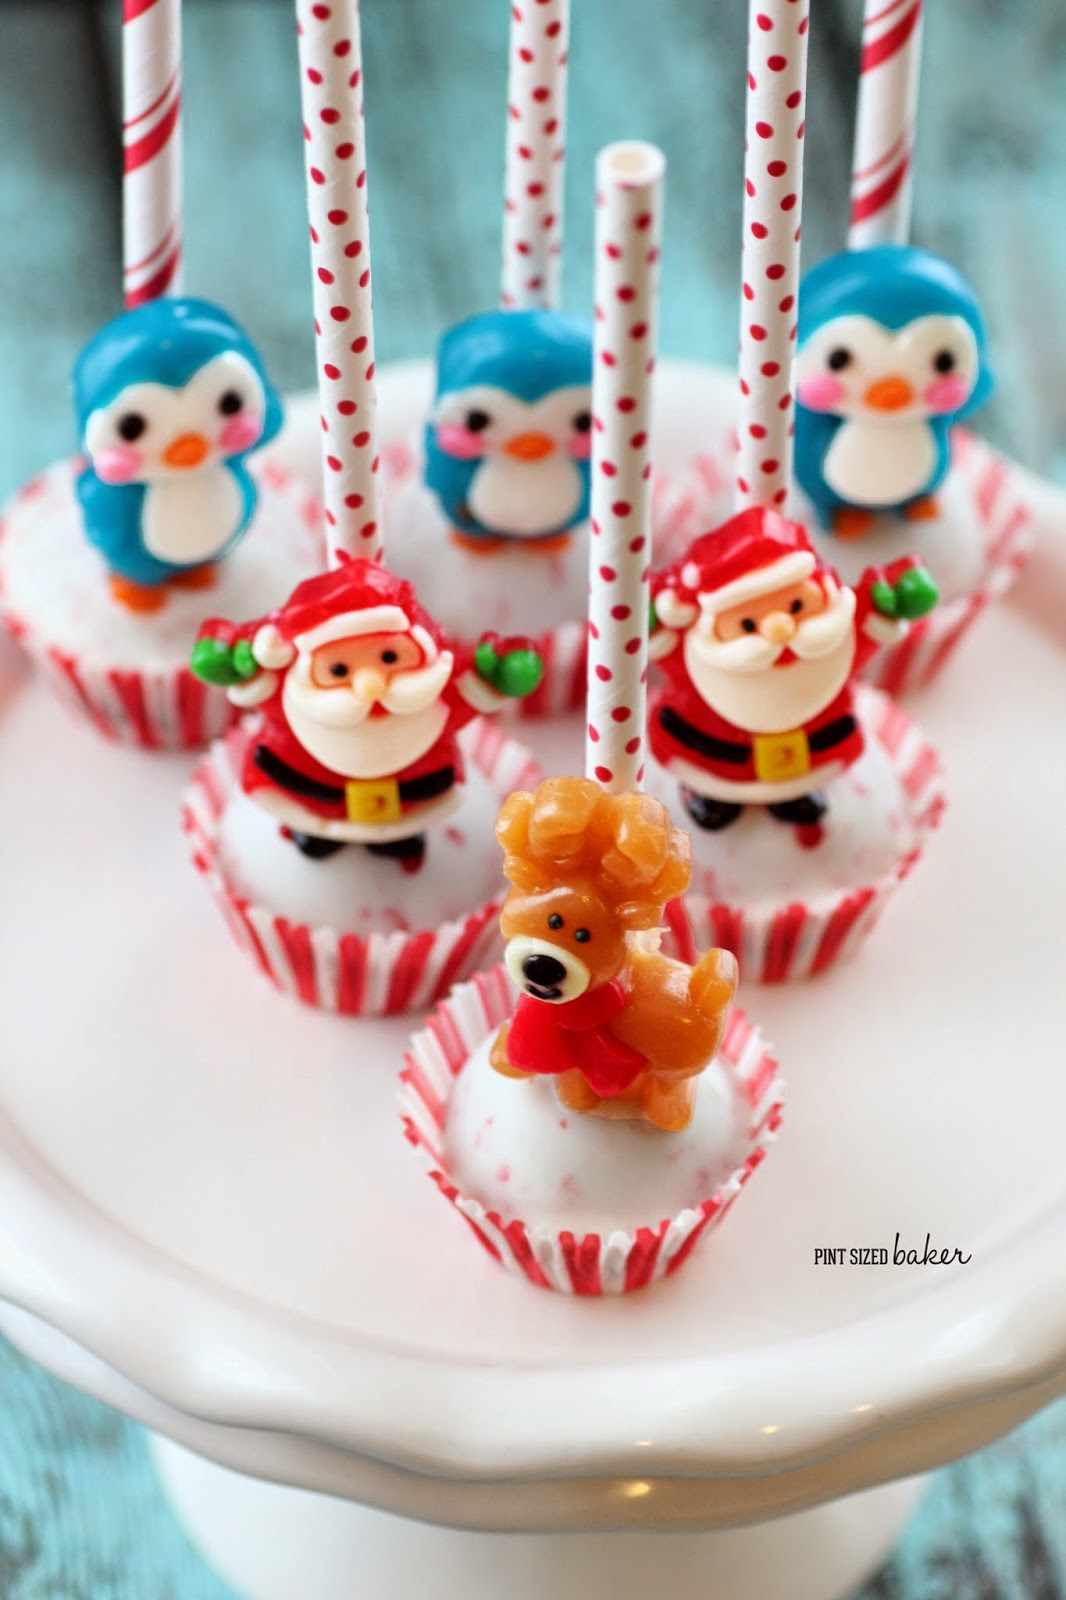 Easy Christmas Cake Pops - Pint Sized Baker